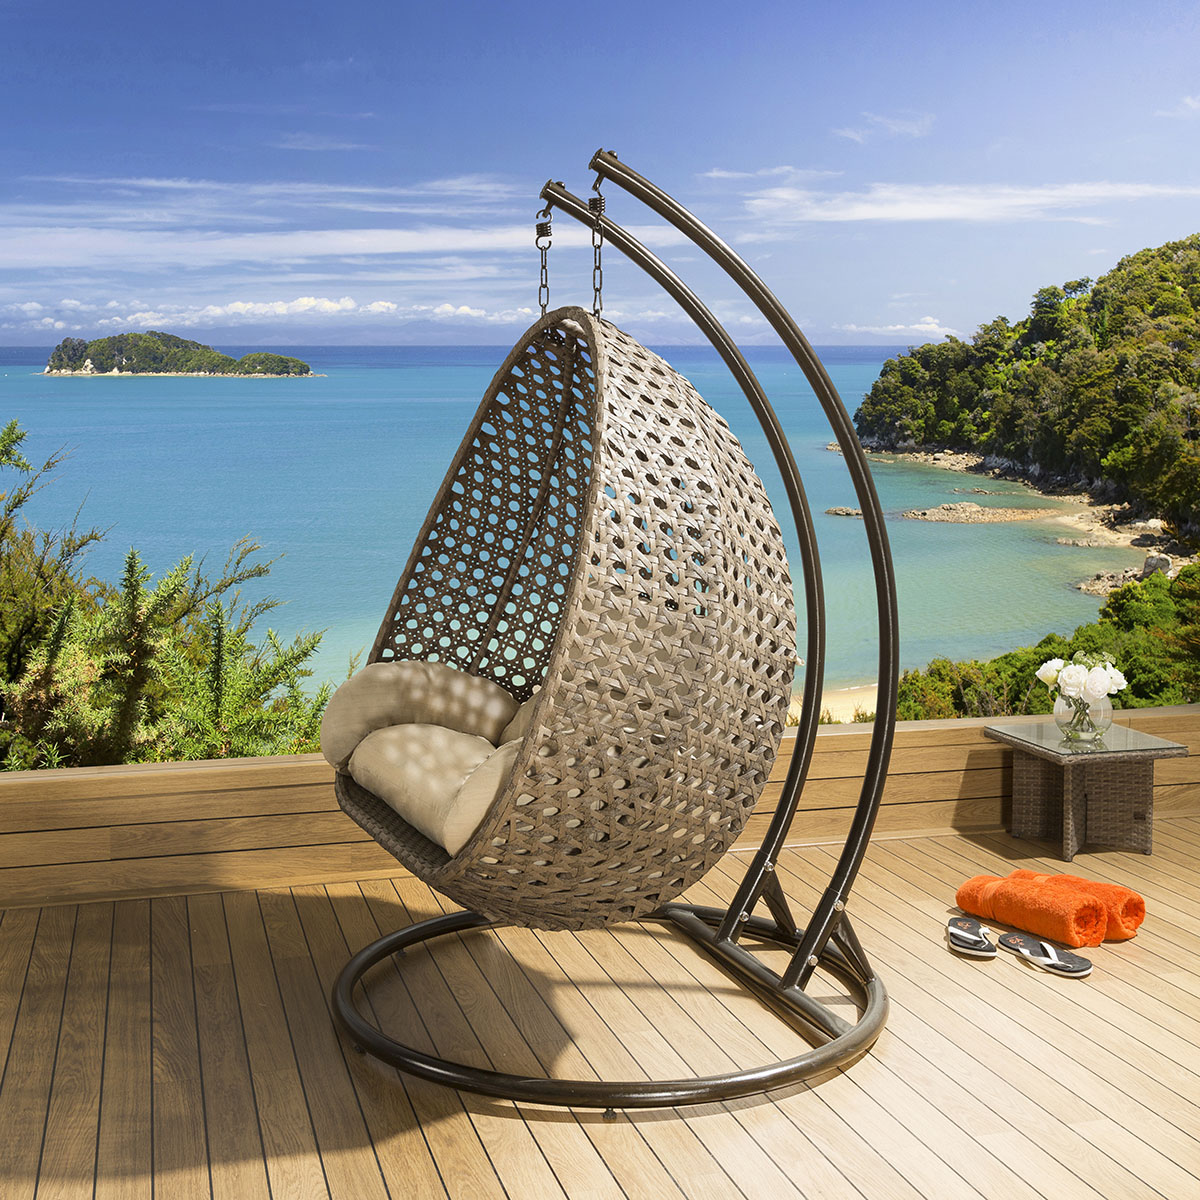 hanging chair luxury fabric for chairs outdoor 2 person garden brown beige